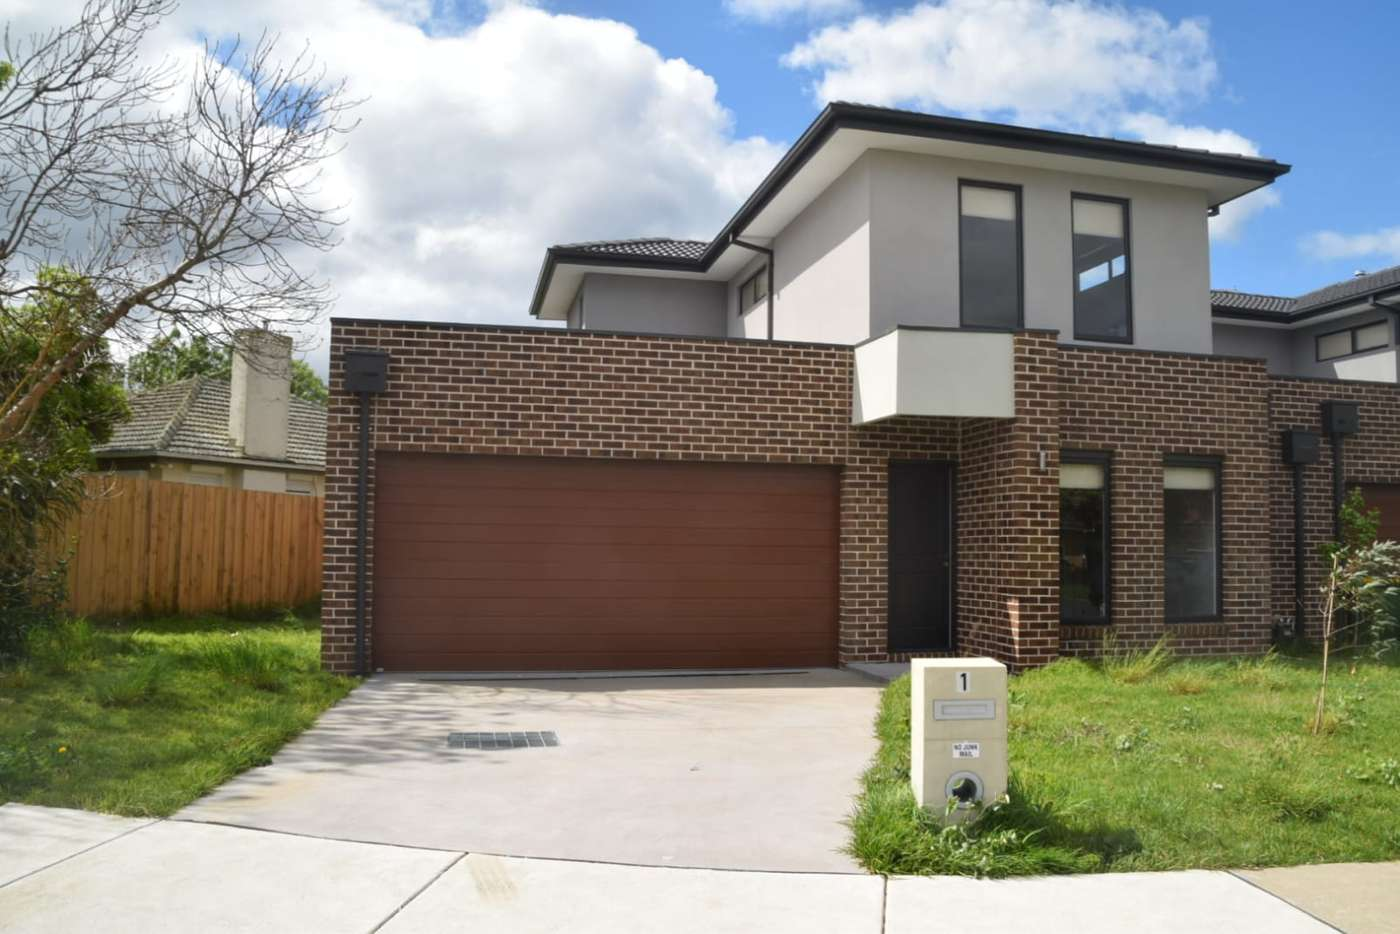 Main view of Homely townhouse listing, 1/18 James Street, Pakenham VIC 3810